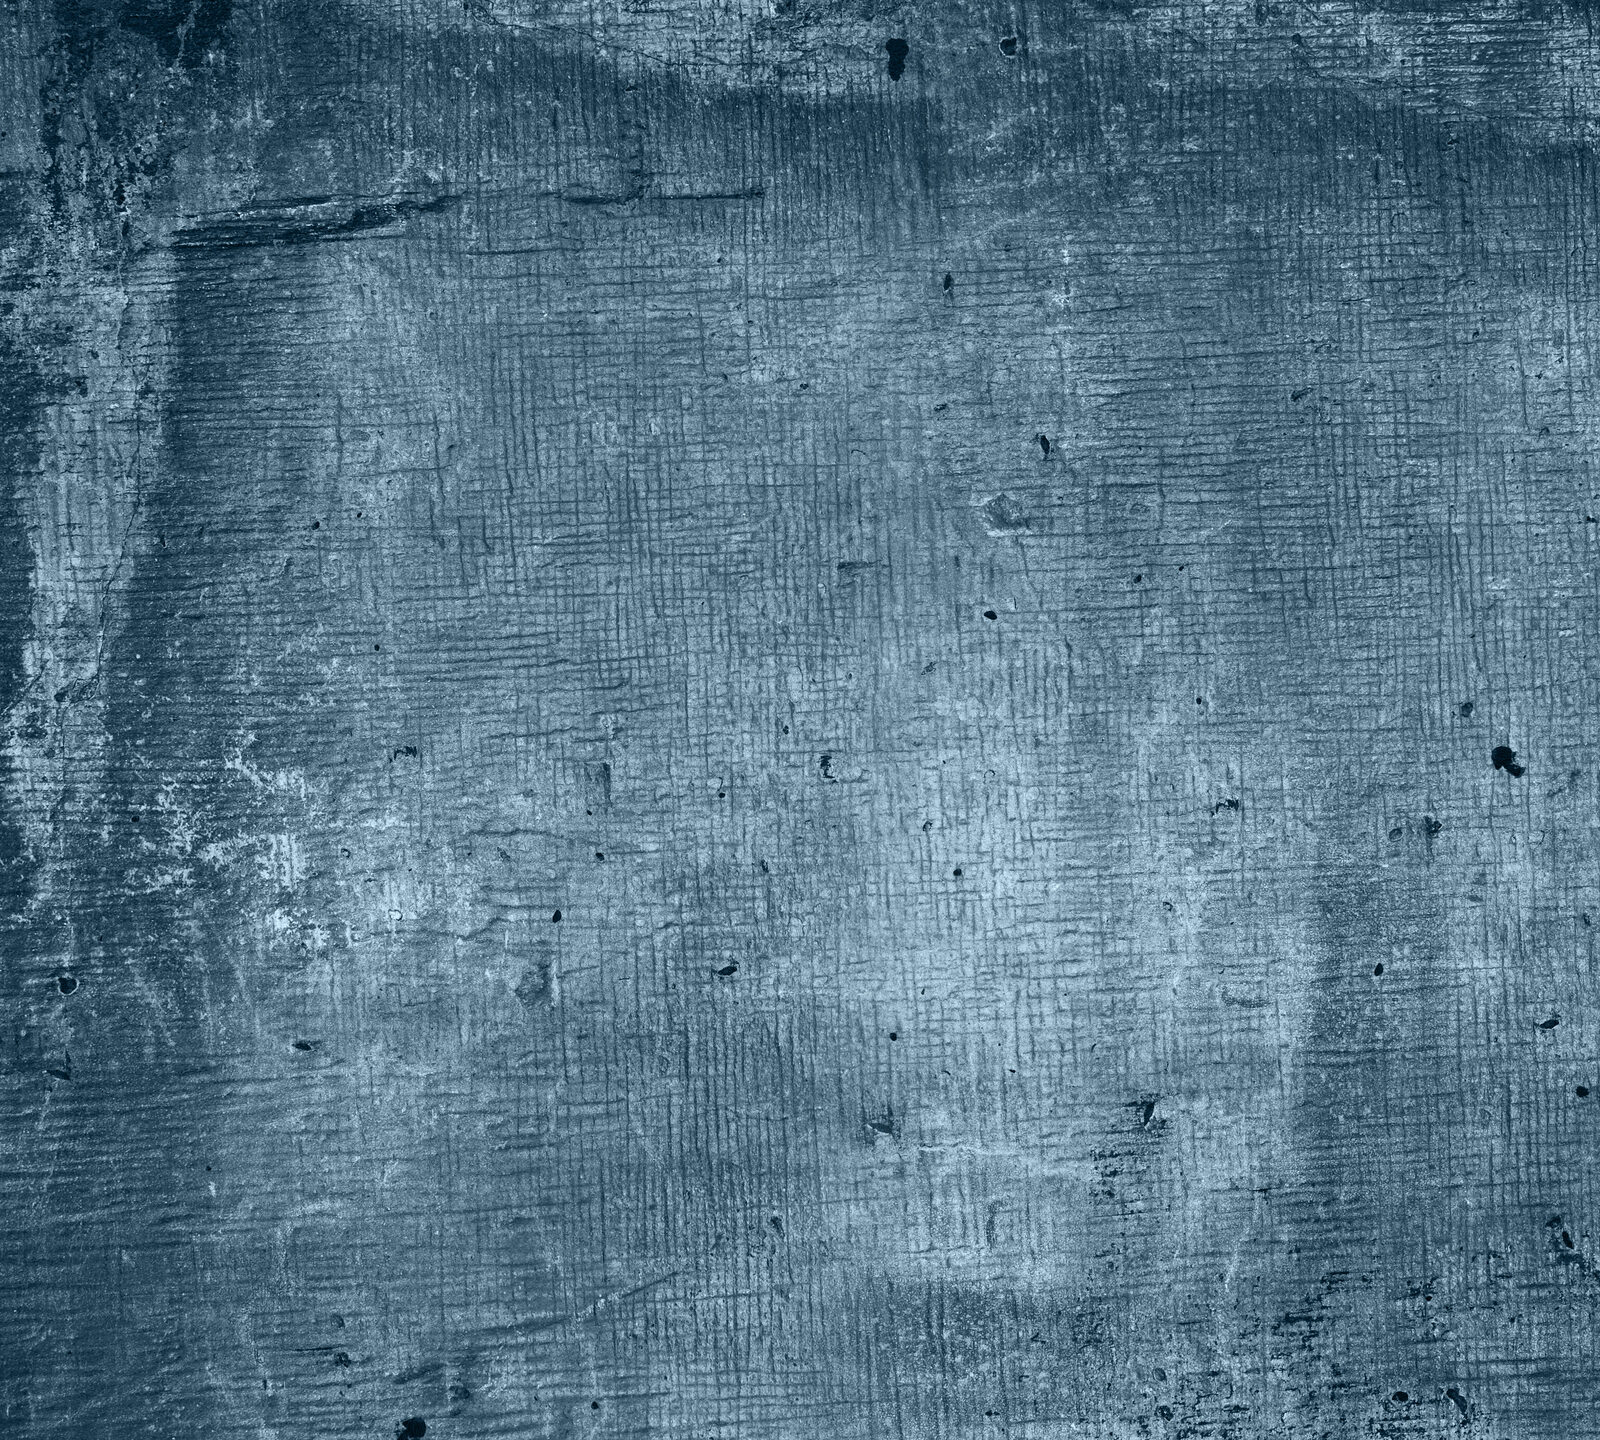 Abstract blue textured background